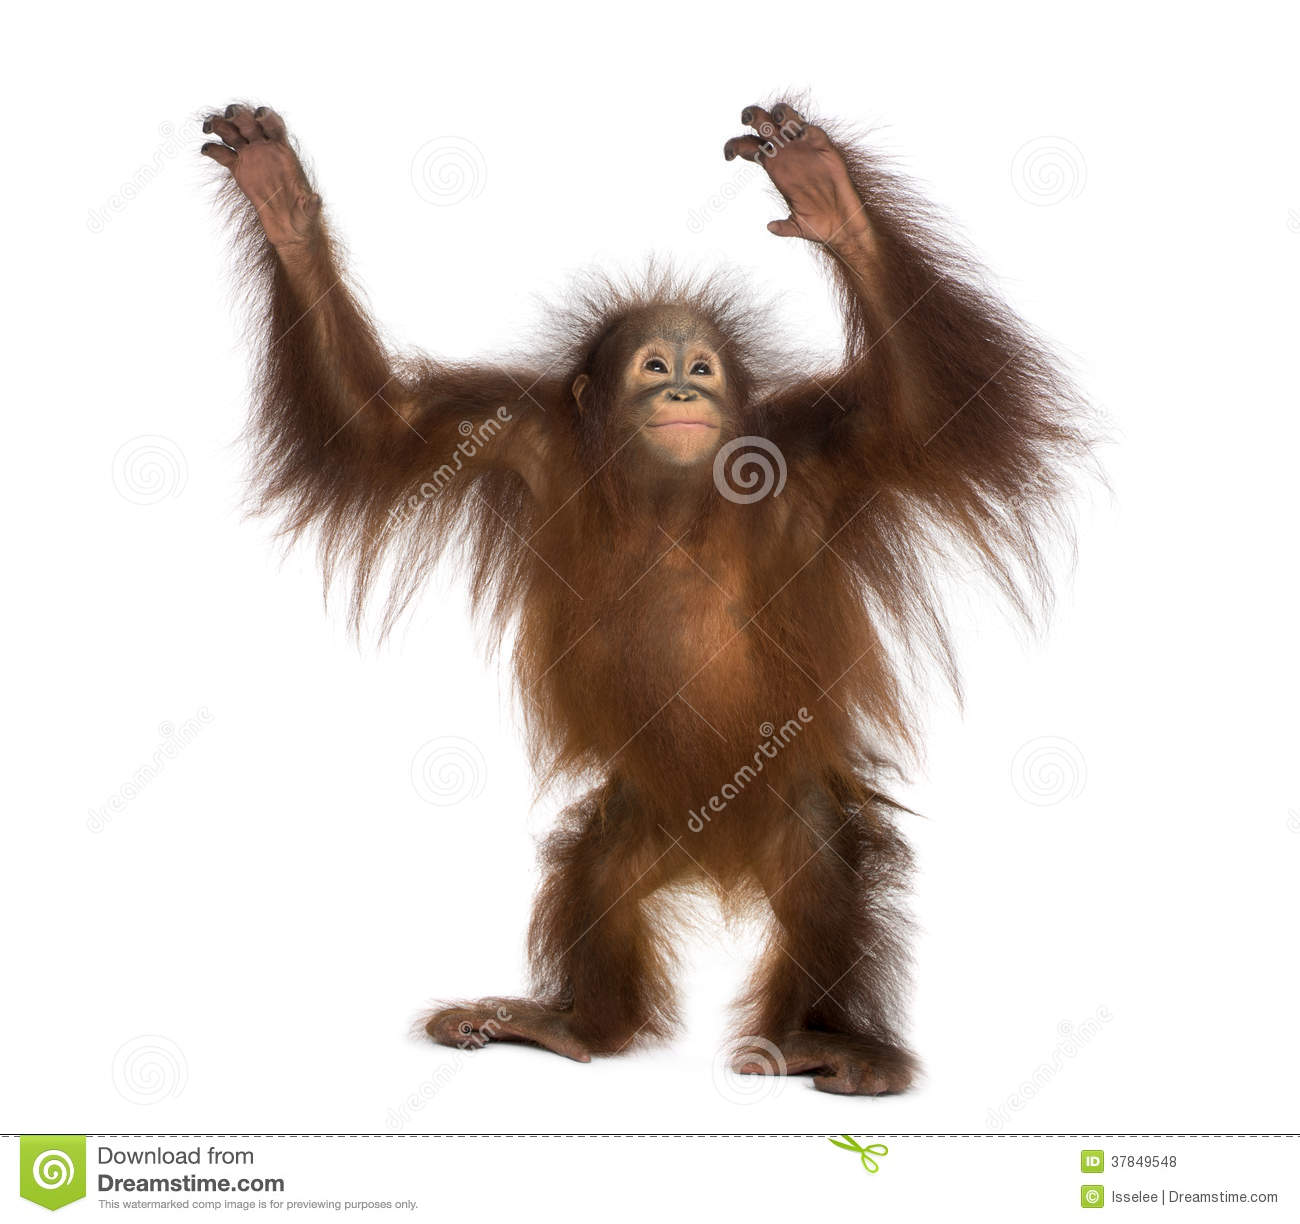 Royalty Free Stock Photos: Young Bornean orangutan standing, reaching ...